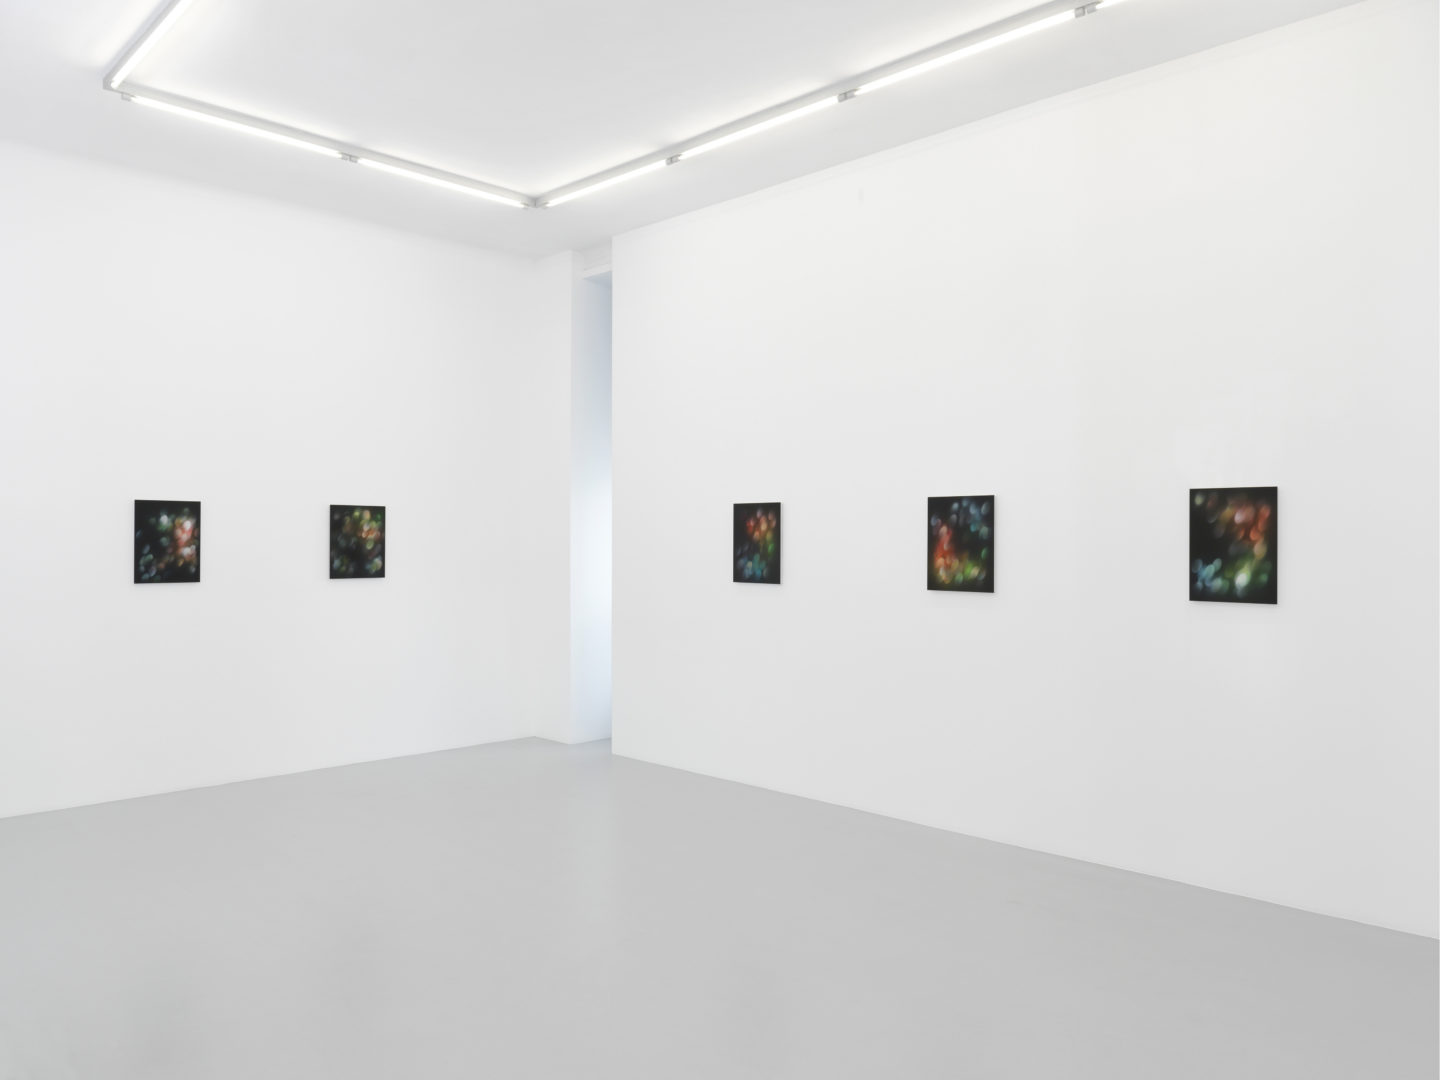 Exhibition View Darren Almond at Xippas Geneva, 2018 / Photo: Annik Wetter / Courtesy: the artist and Xippas